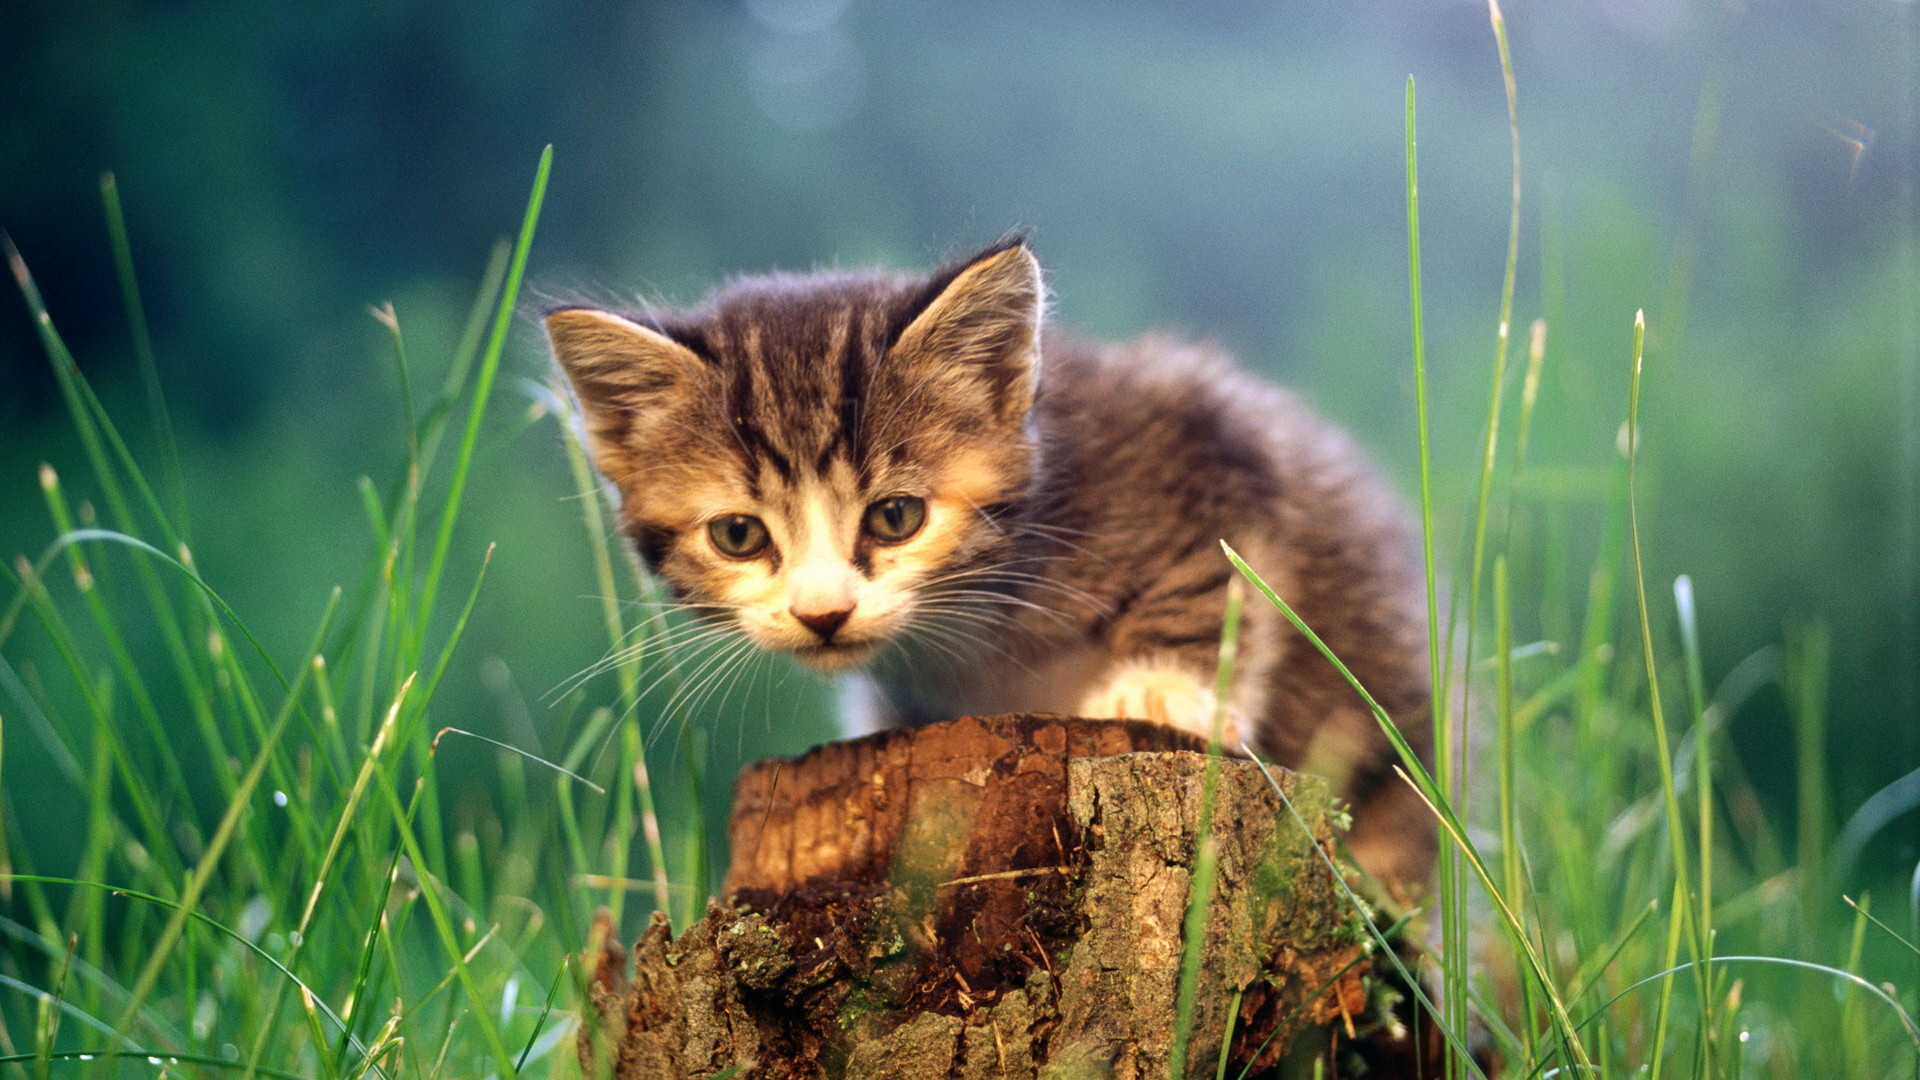 1920x1080 cats animals grass kittens - Wallpaper (#635650) / Wallbase.cc